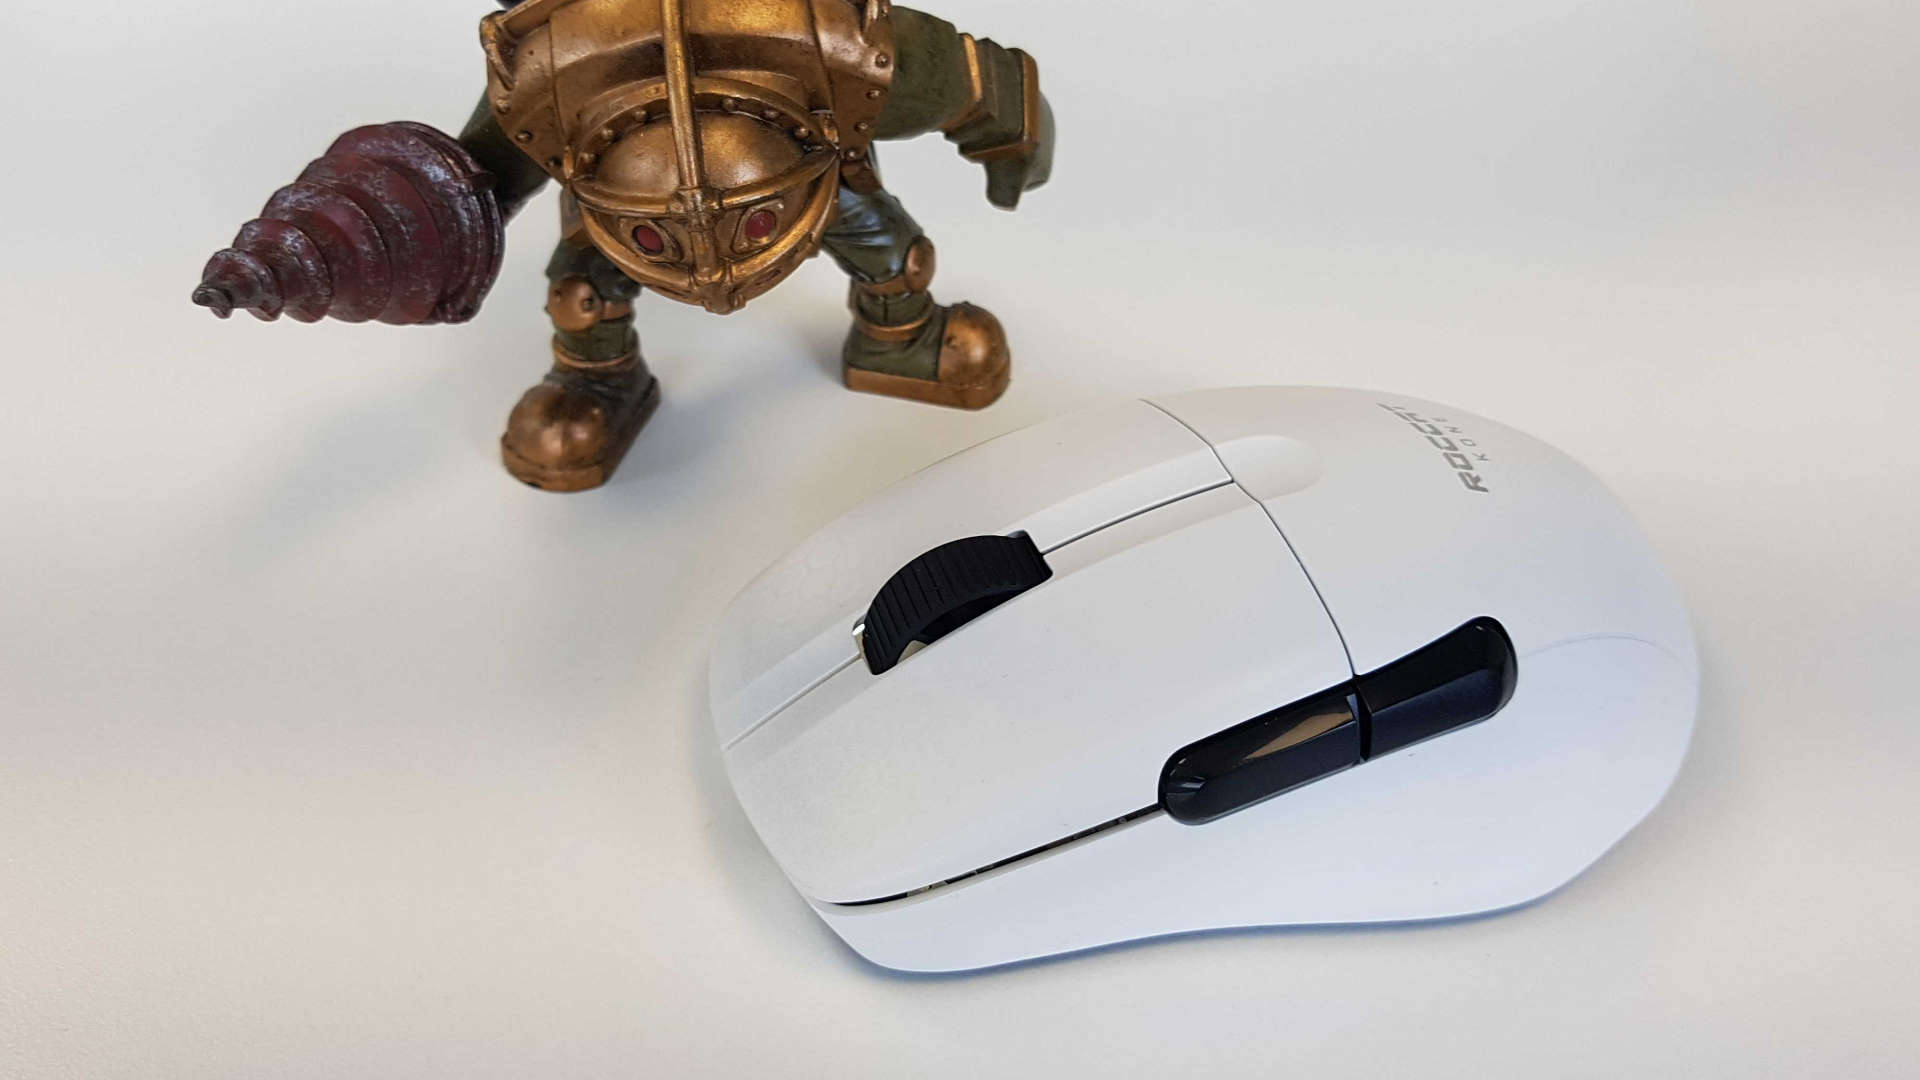 The Roccat Kone Pro Air wireless gaming mouse